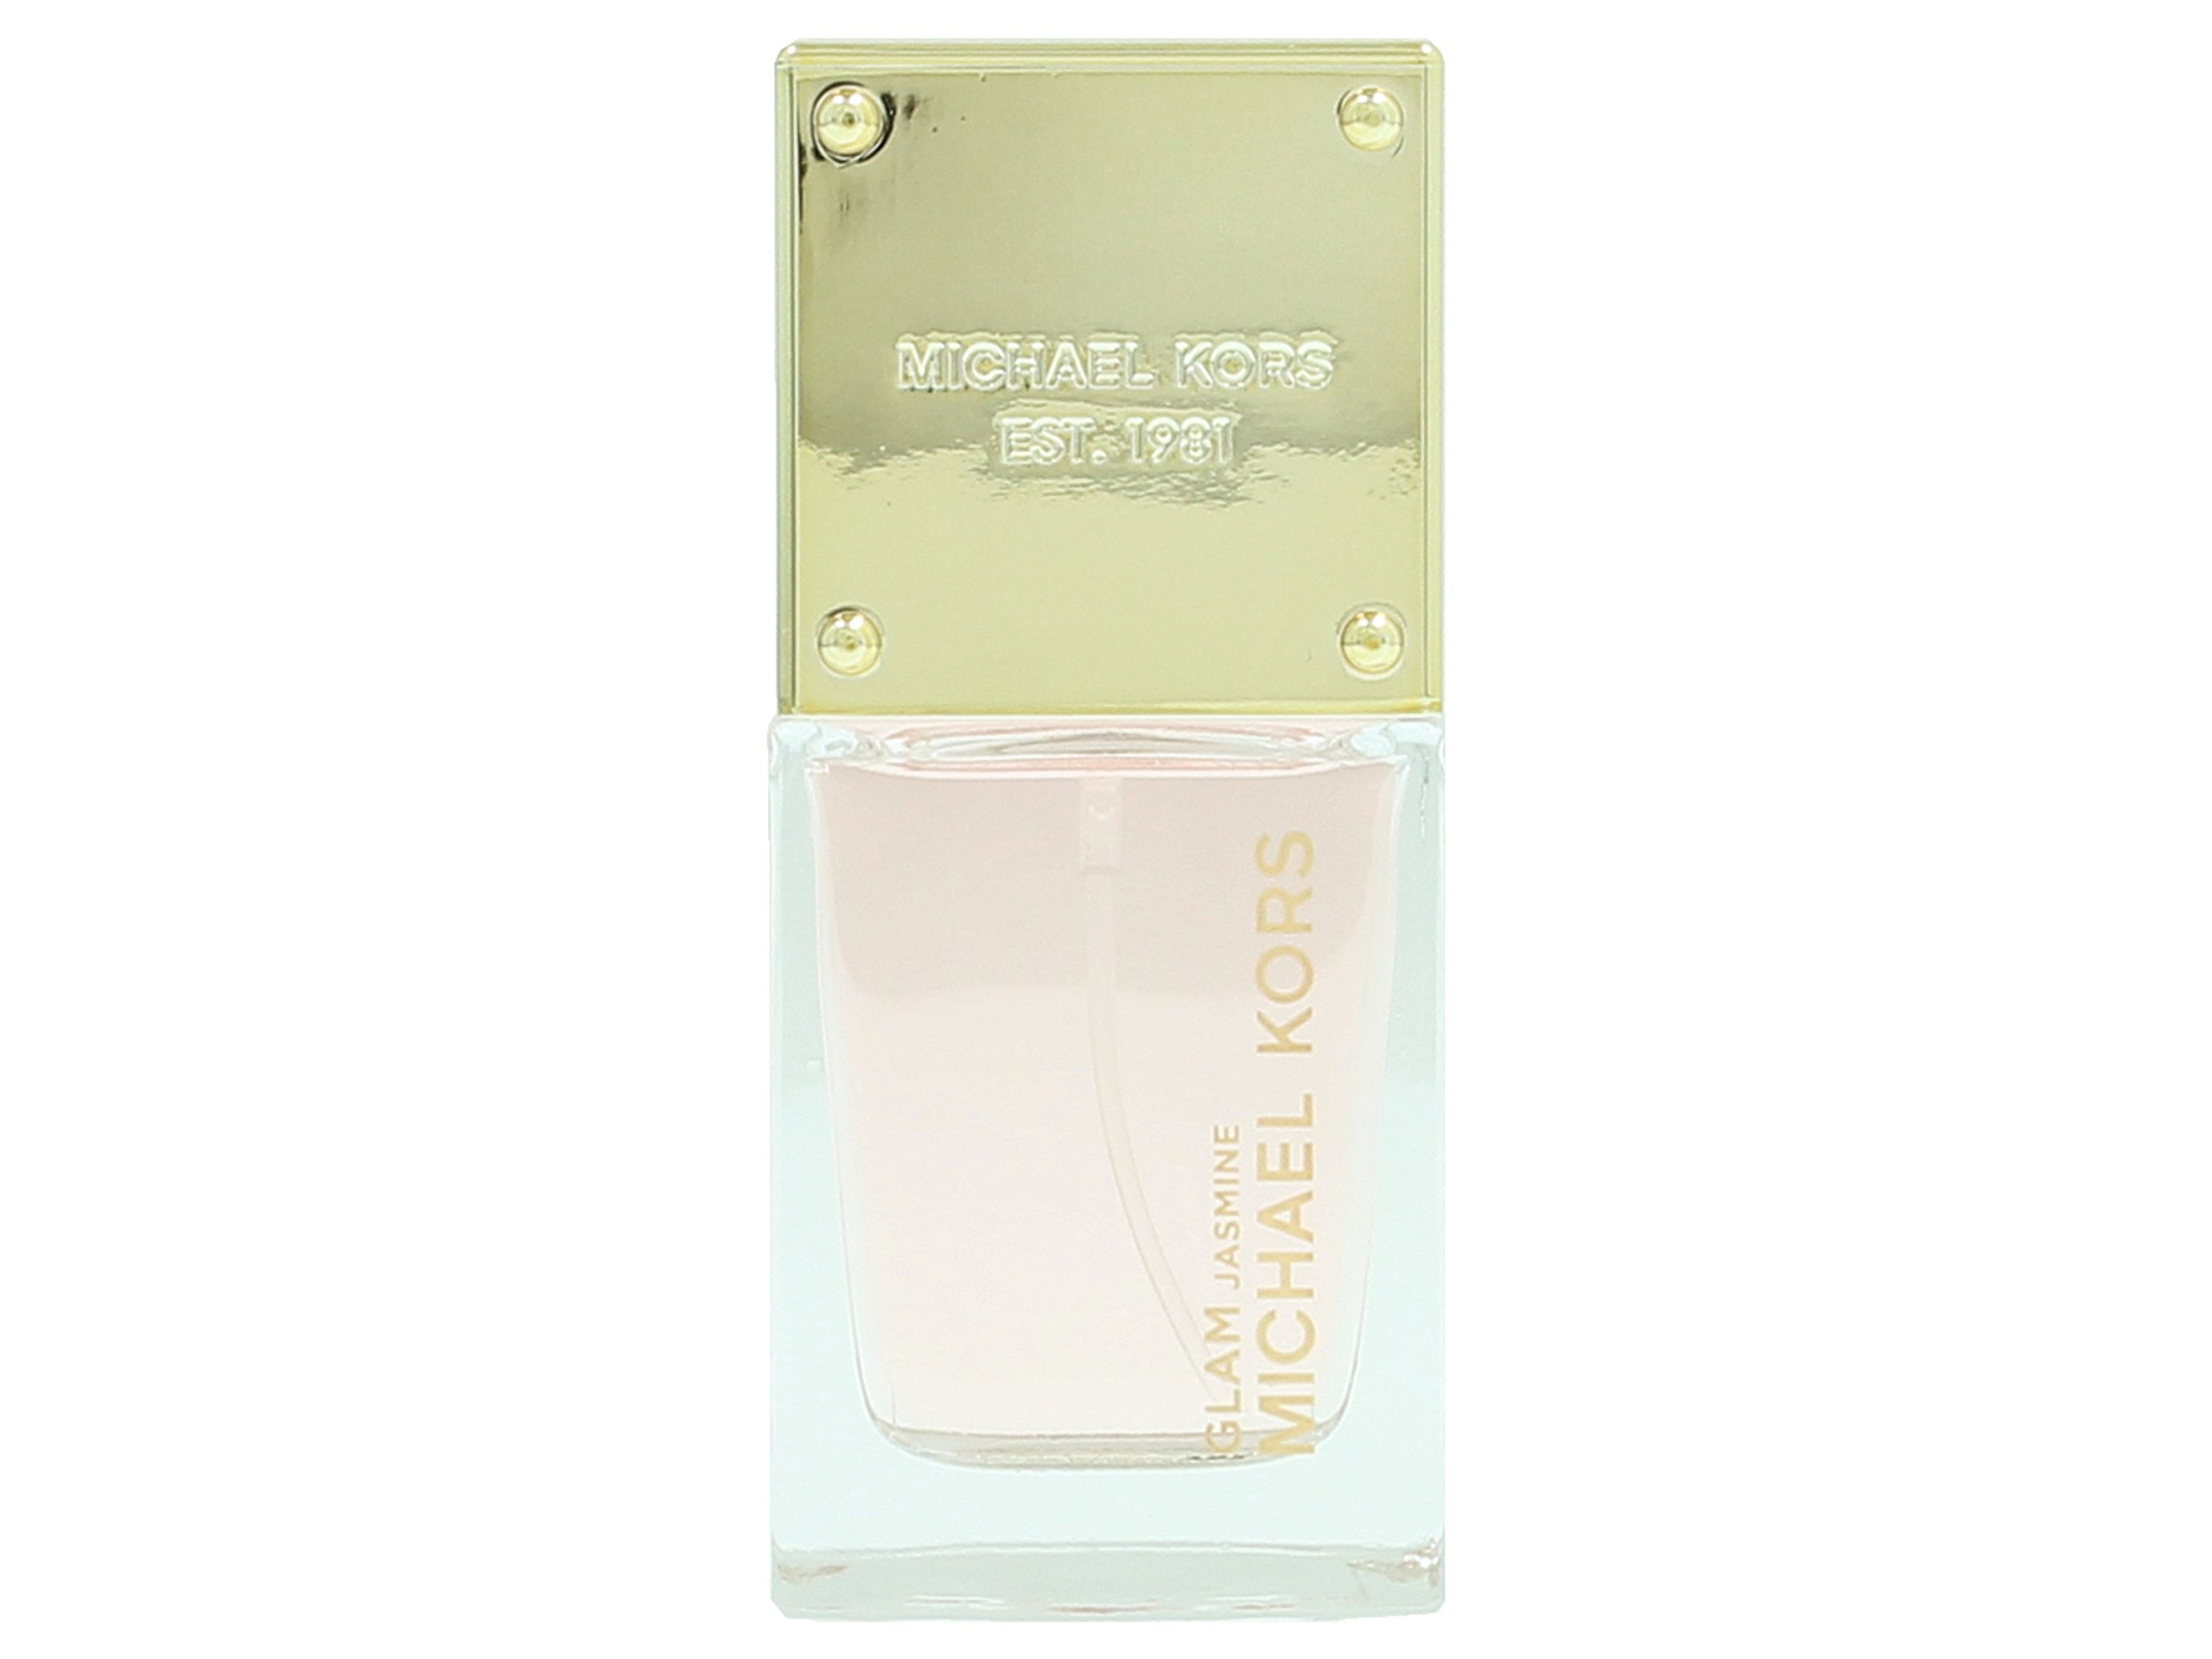 MICHAEL KORS Glam Jasmine for Women Eau de Parfum Spray, 1 Fluid Ounce